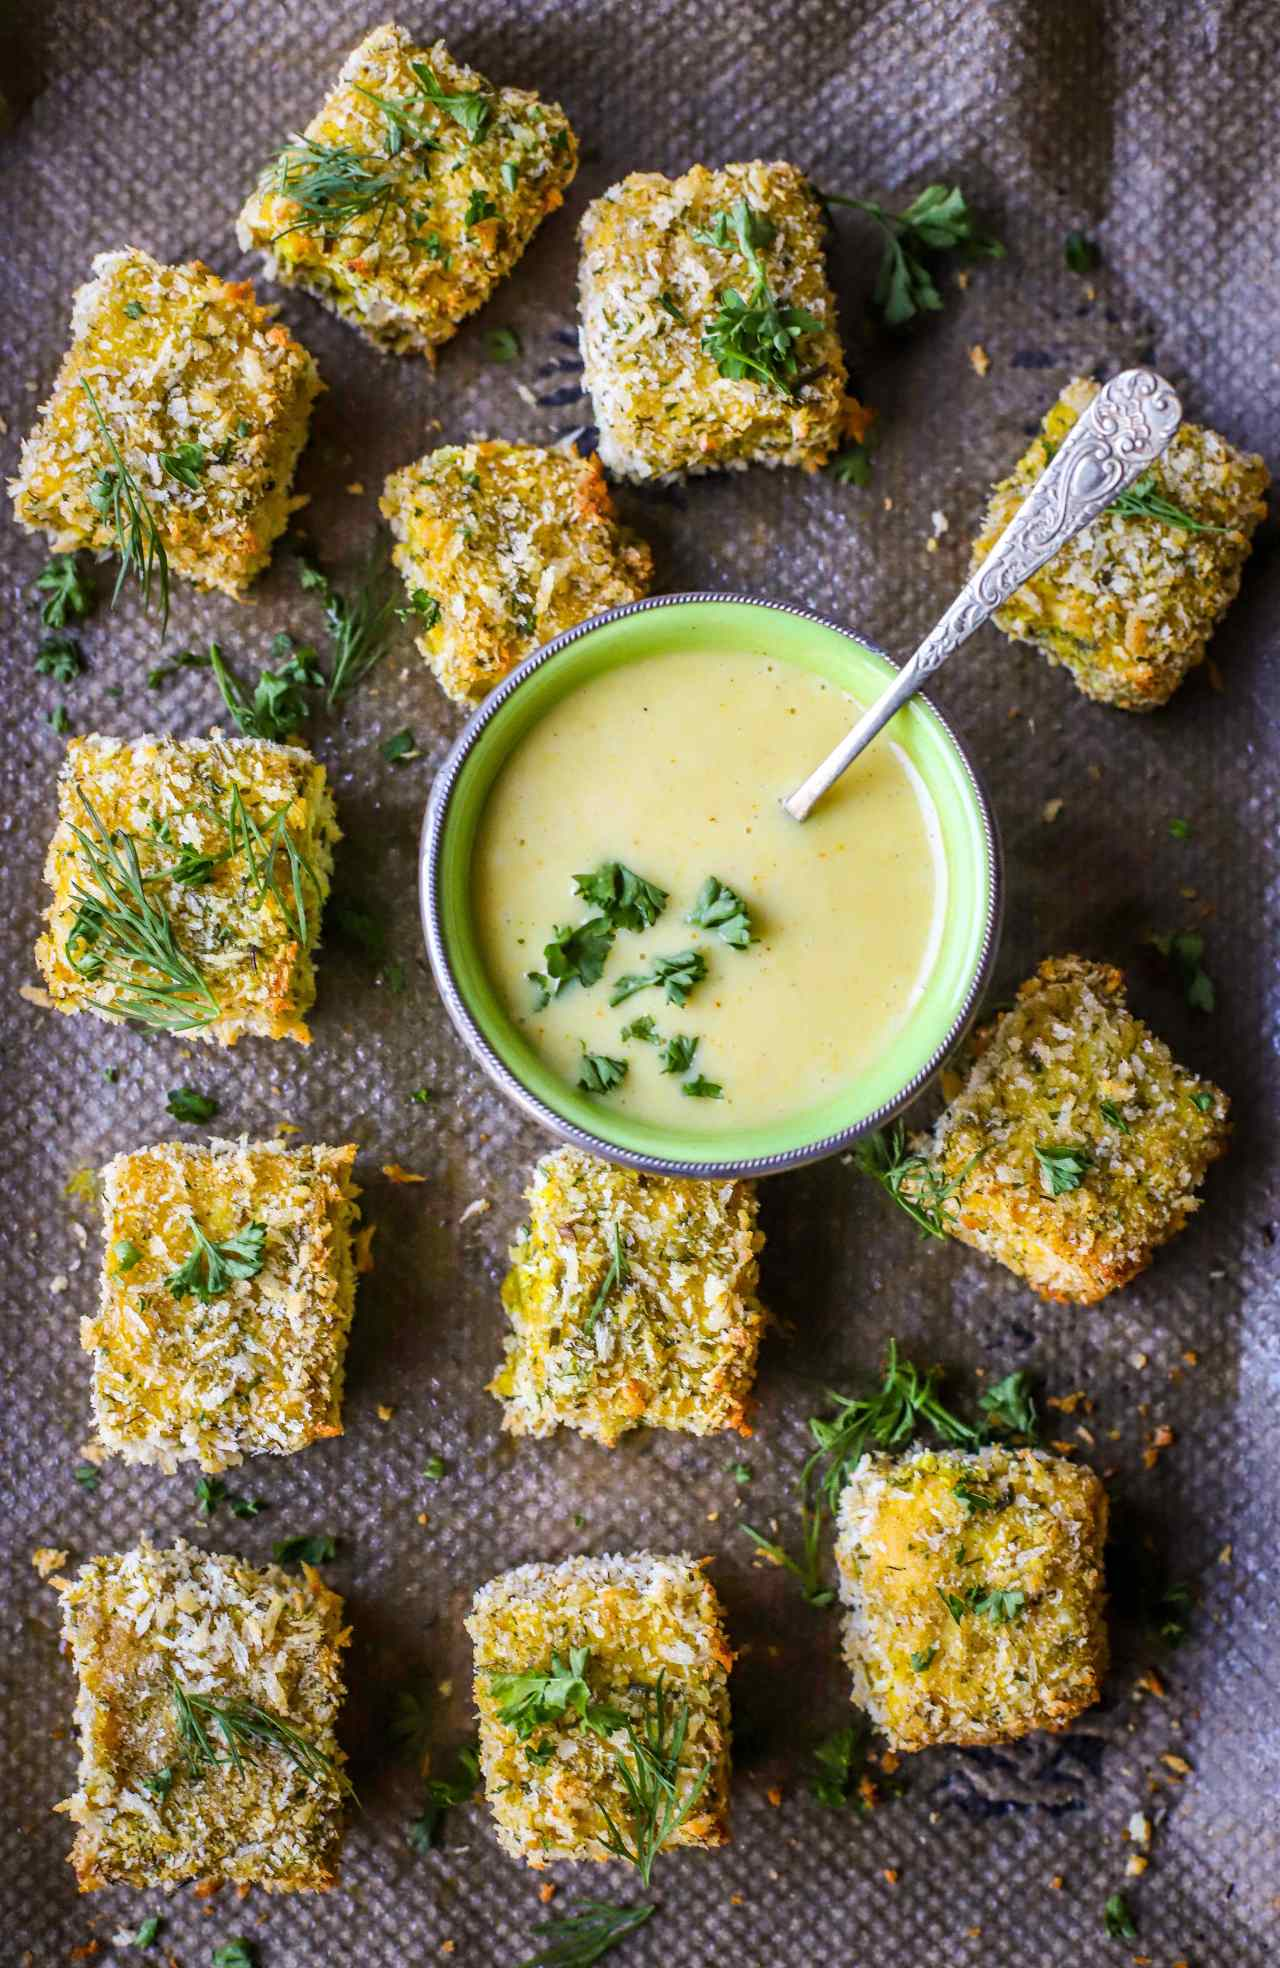 "Pop these crispy baked #tofu ""chicken-style"" #nuggets in a sandwich, on your favourite salad, or dip them in my easy maple-mustard sauce. These versatile little #vegan bites are utterly delectable any way you eat them, and super easy to make! An #easy, nutritious, #family- and #party-friendly #recipe."